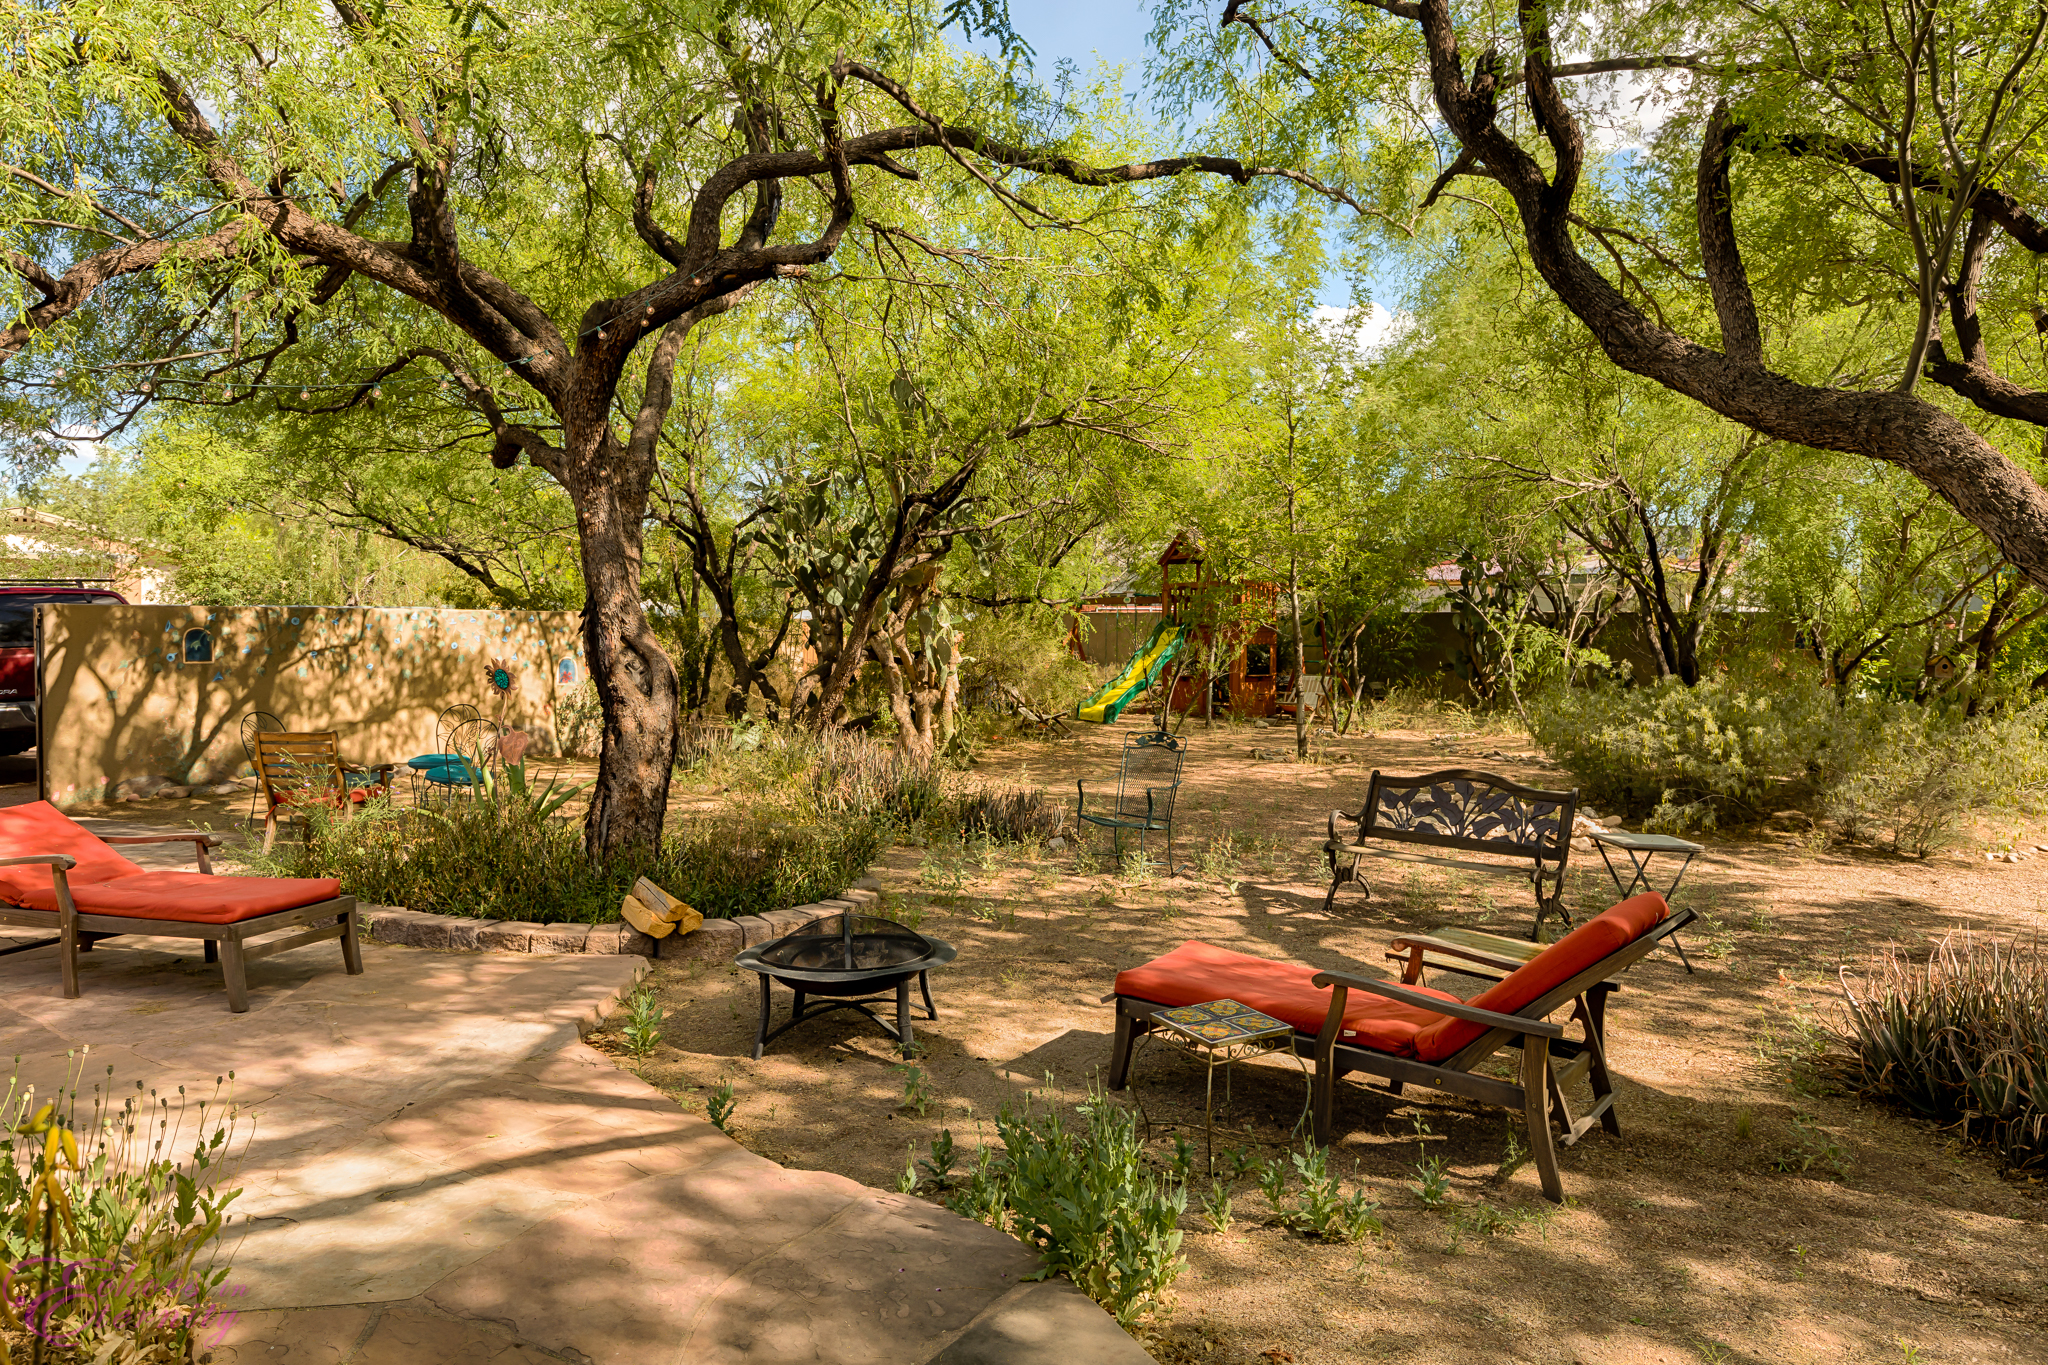 Professional Photos Tucson Arizona Rental Real Estate Photography Airbnb VRBO 10.jpg